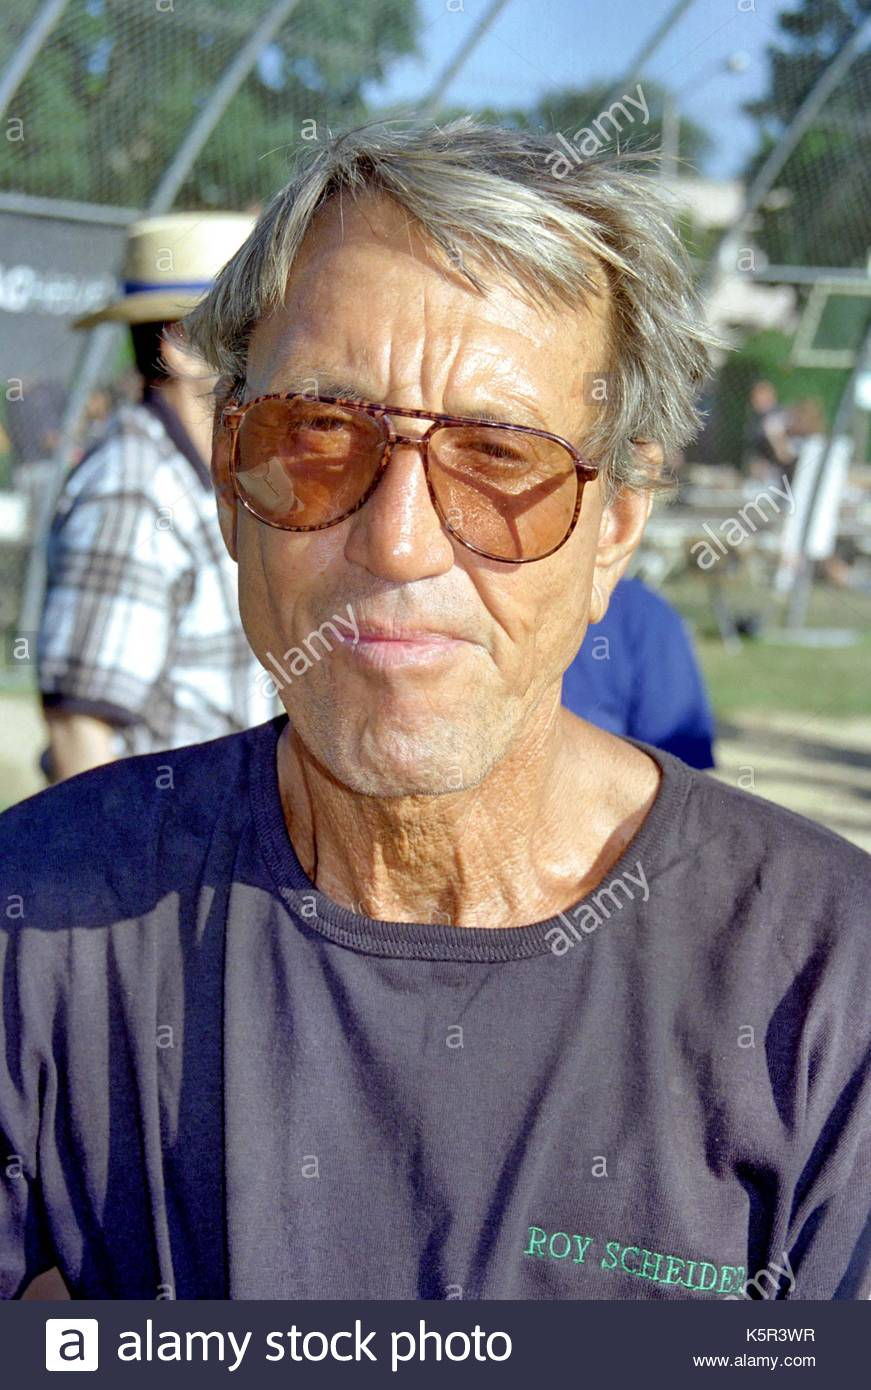 Roy Scheider Stock Photos & Roy Scheider Stock Images - Alamy